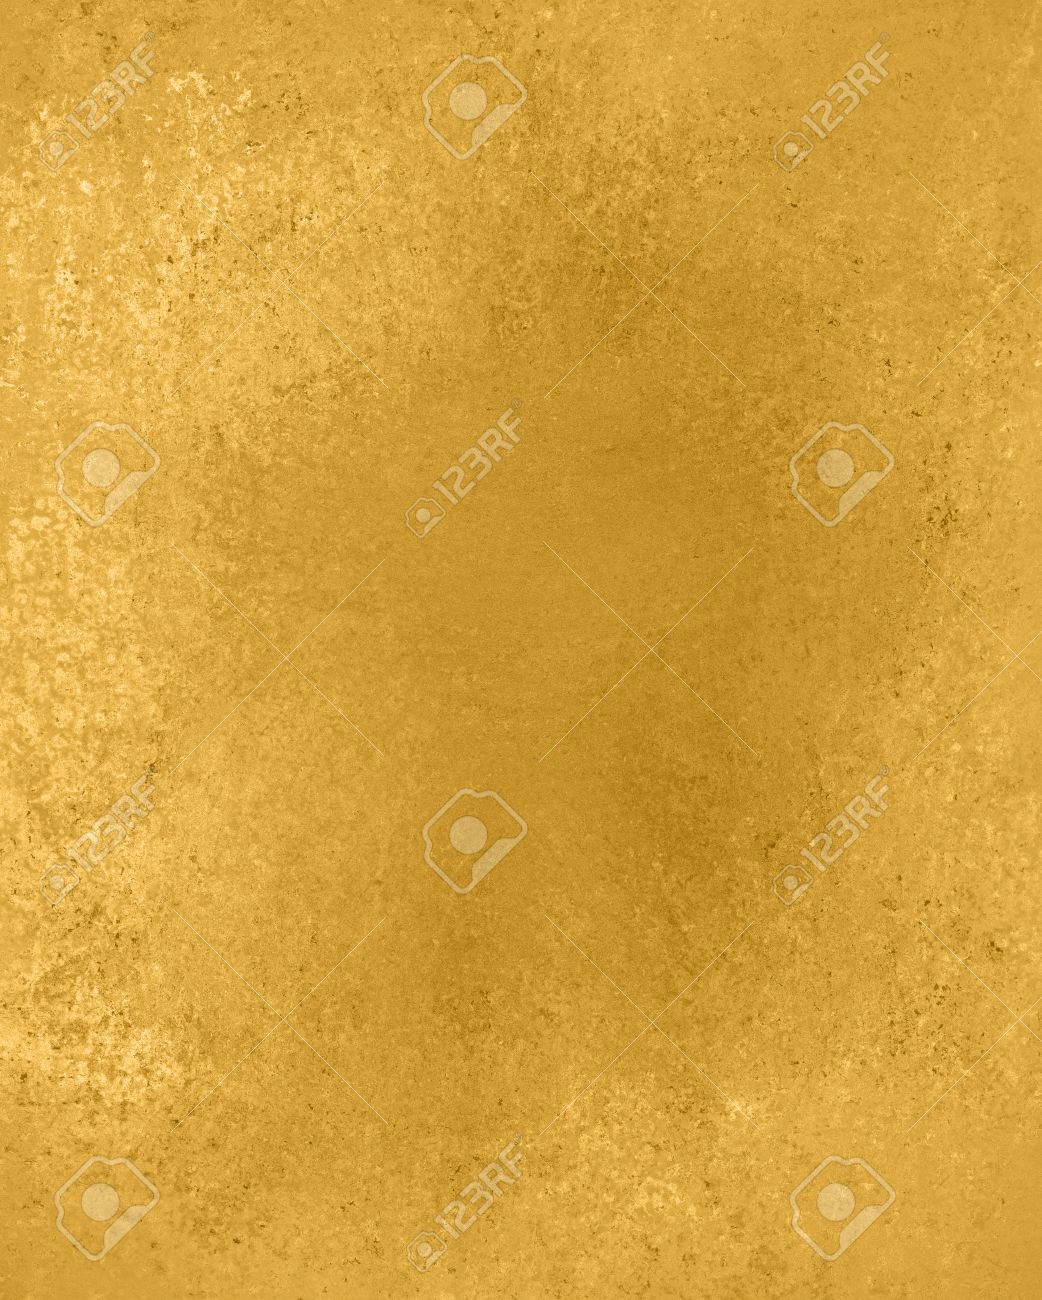 yellow gold background texture design, old gold wall paint stock